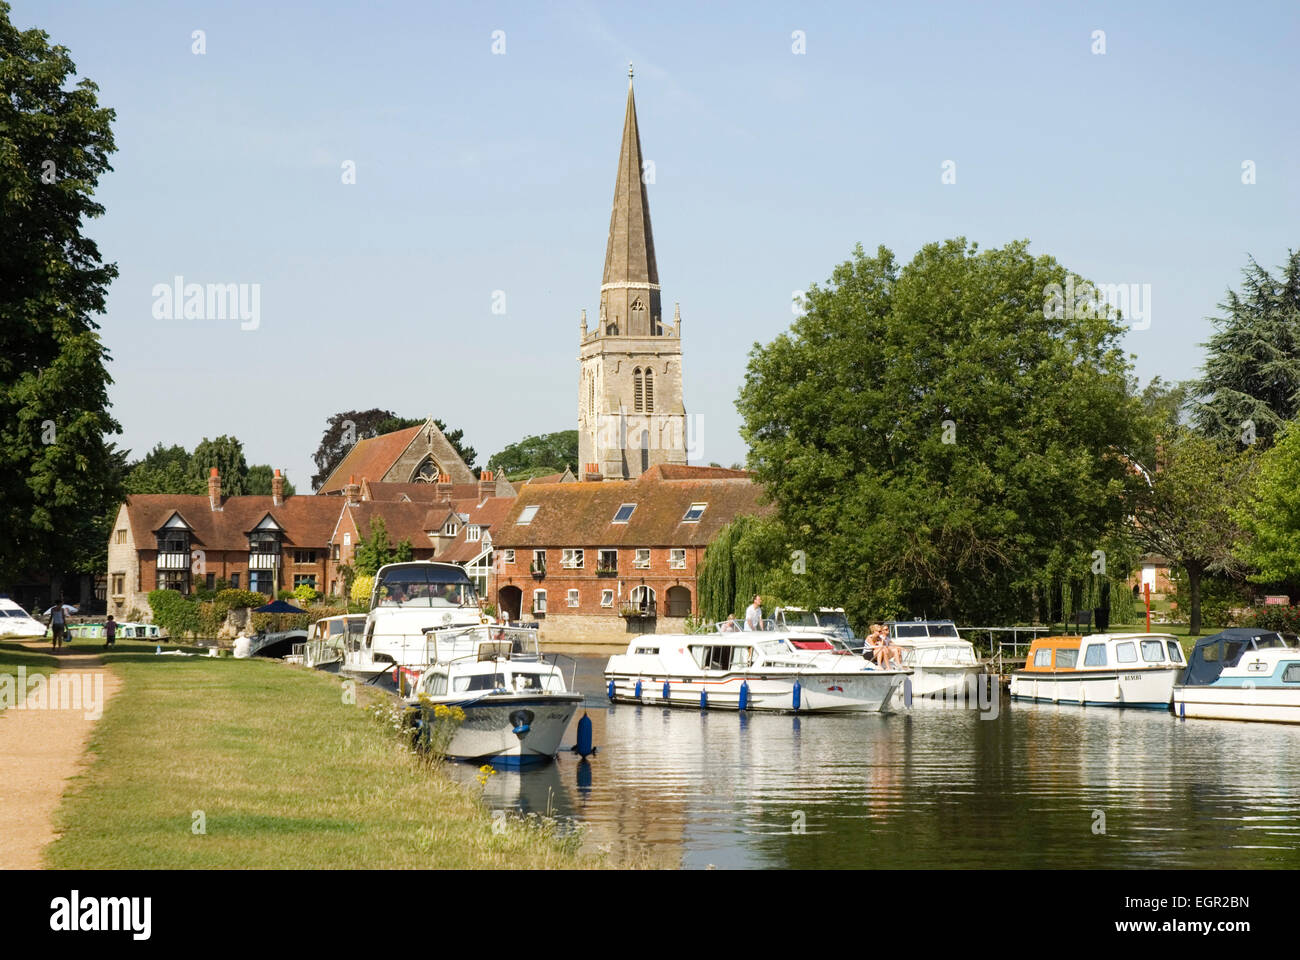 Berks - Abingdon - river Thames - pleasure boats  - backdrop town rooftops + C13 steeple of St Helen's church - Stock Image